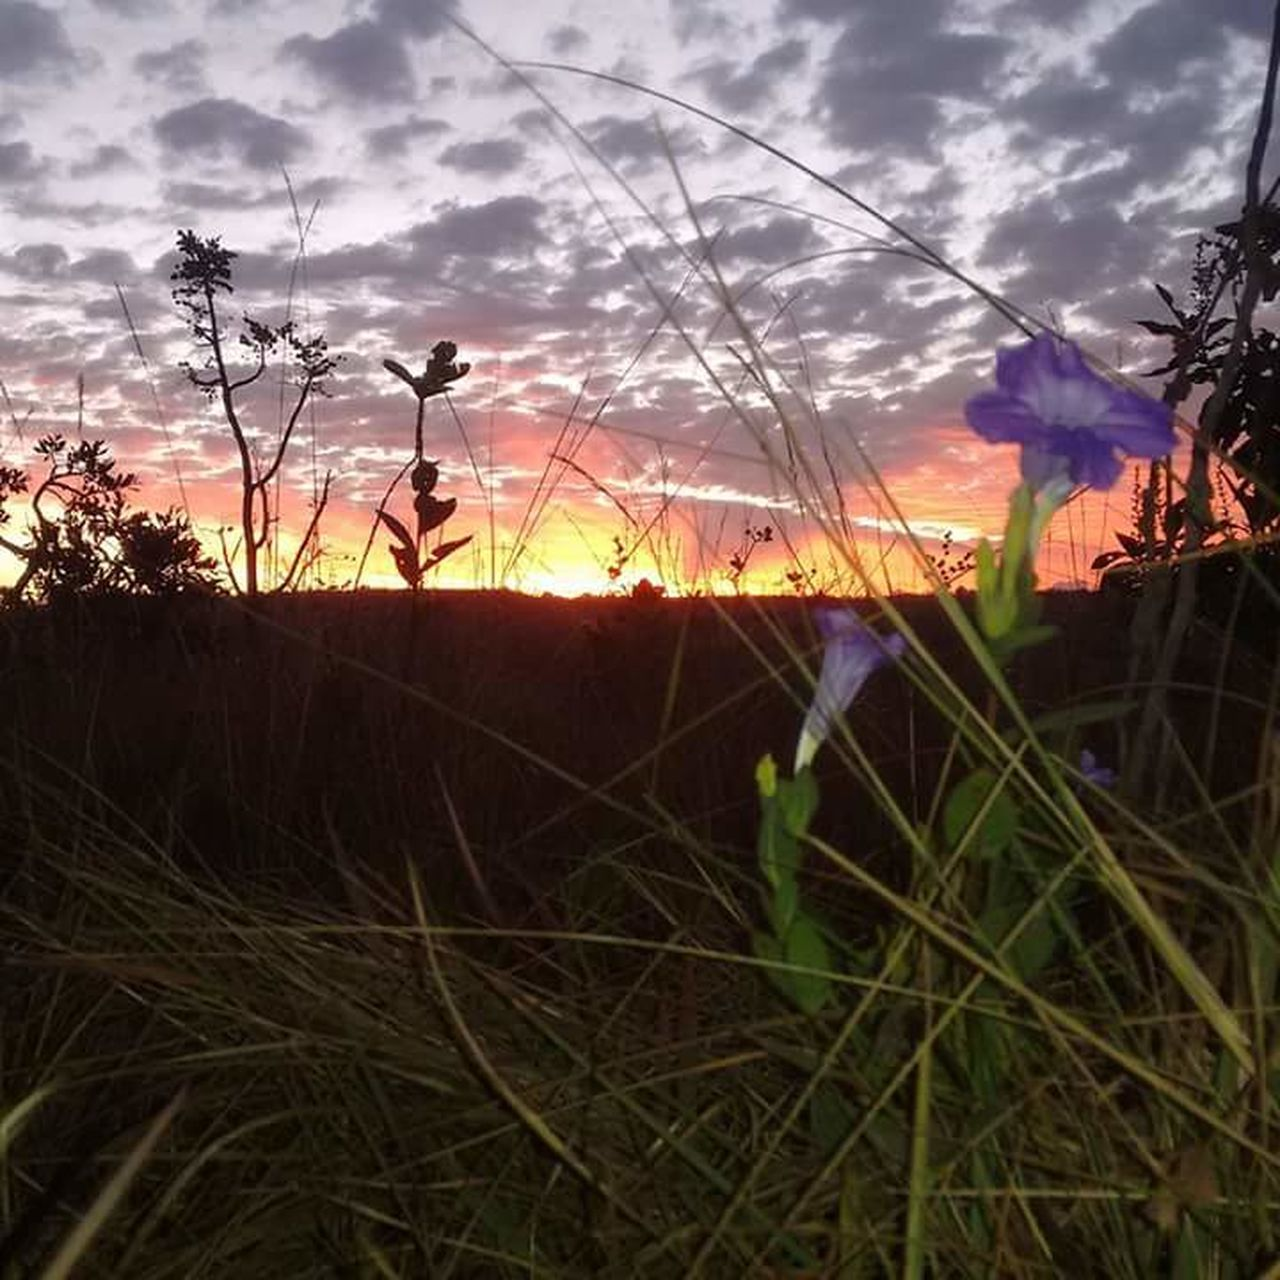 sky, growth, sunset, cloud - sky, nature, plant, field, grass, outdoors, no people, beauty in nature, tranquility, flower, scenics, day, close-up